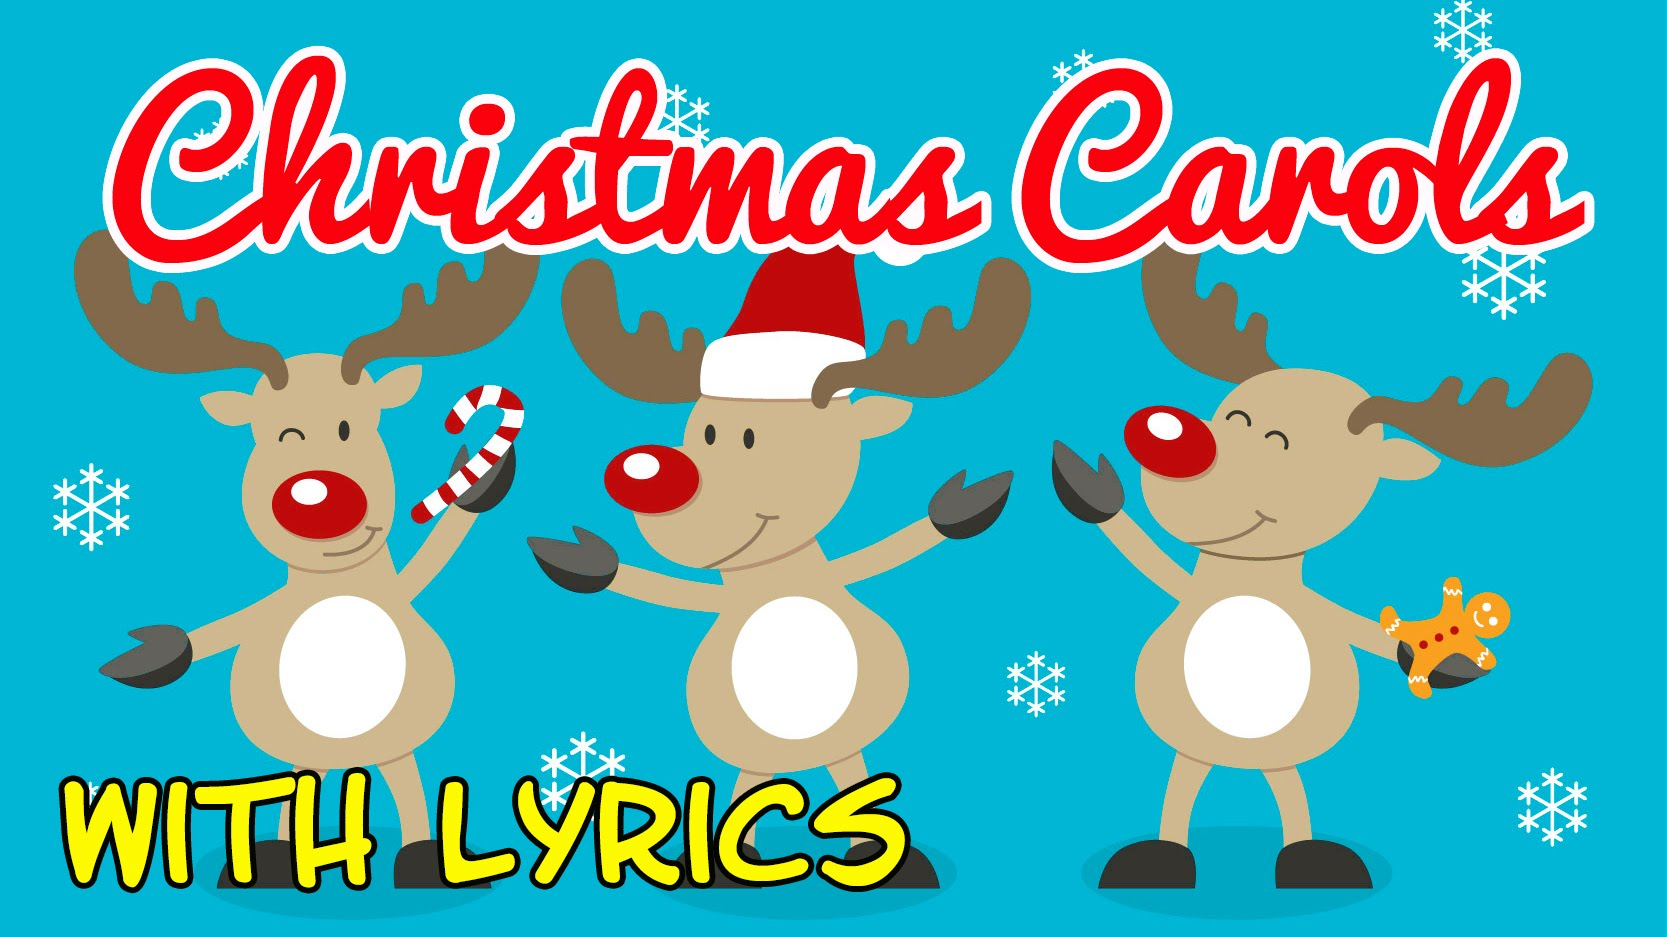 Caroling clipart song.  christmas carols for